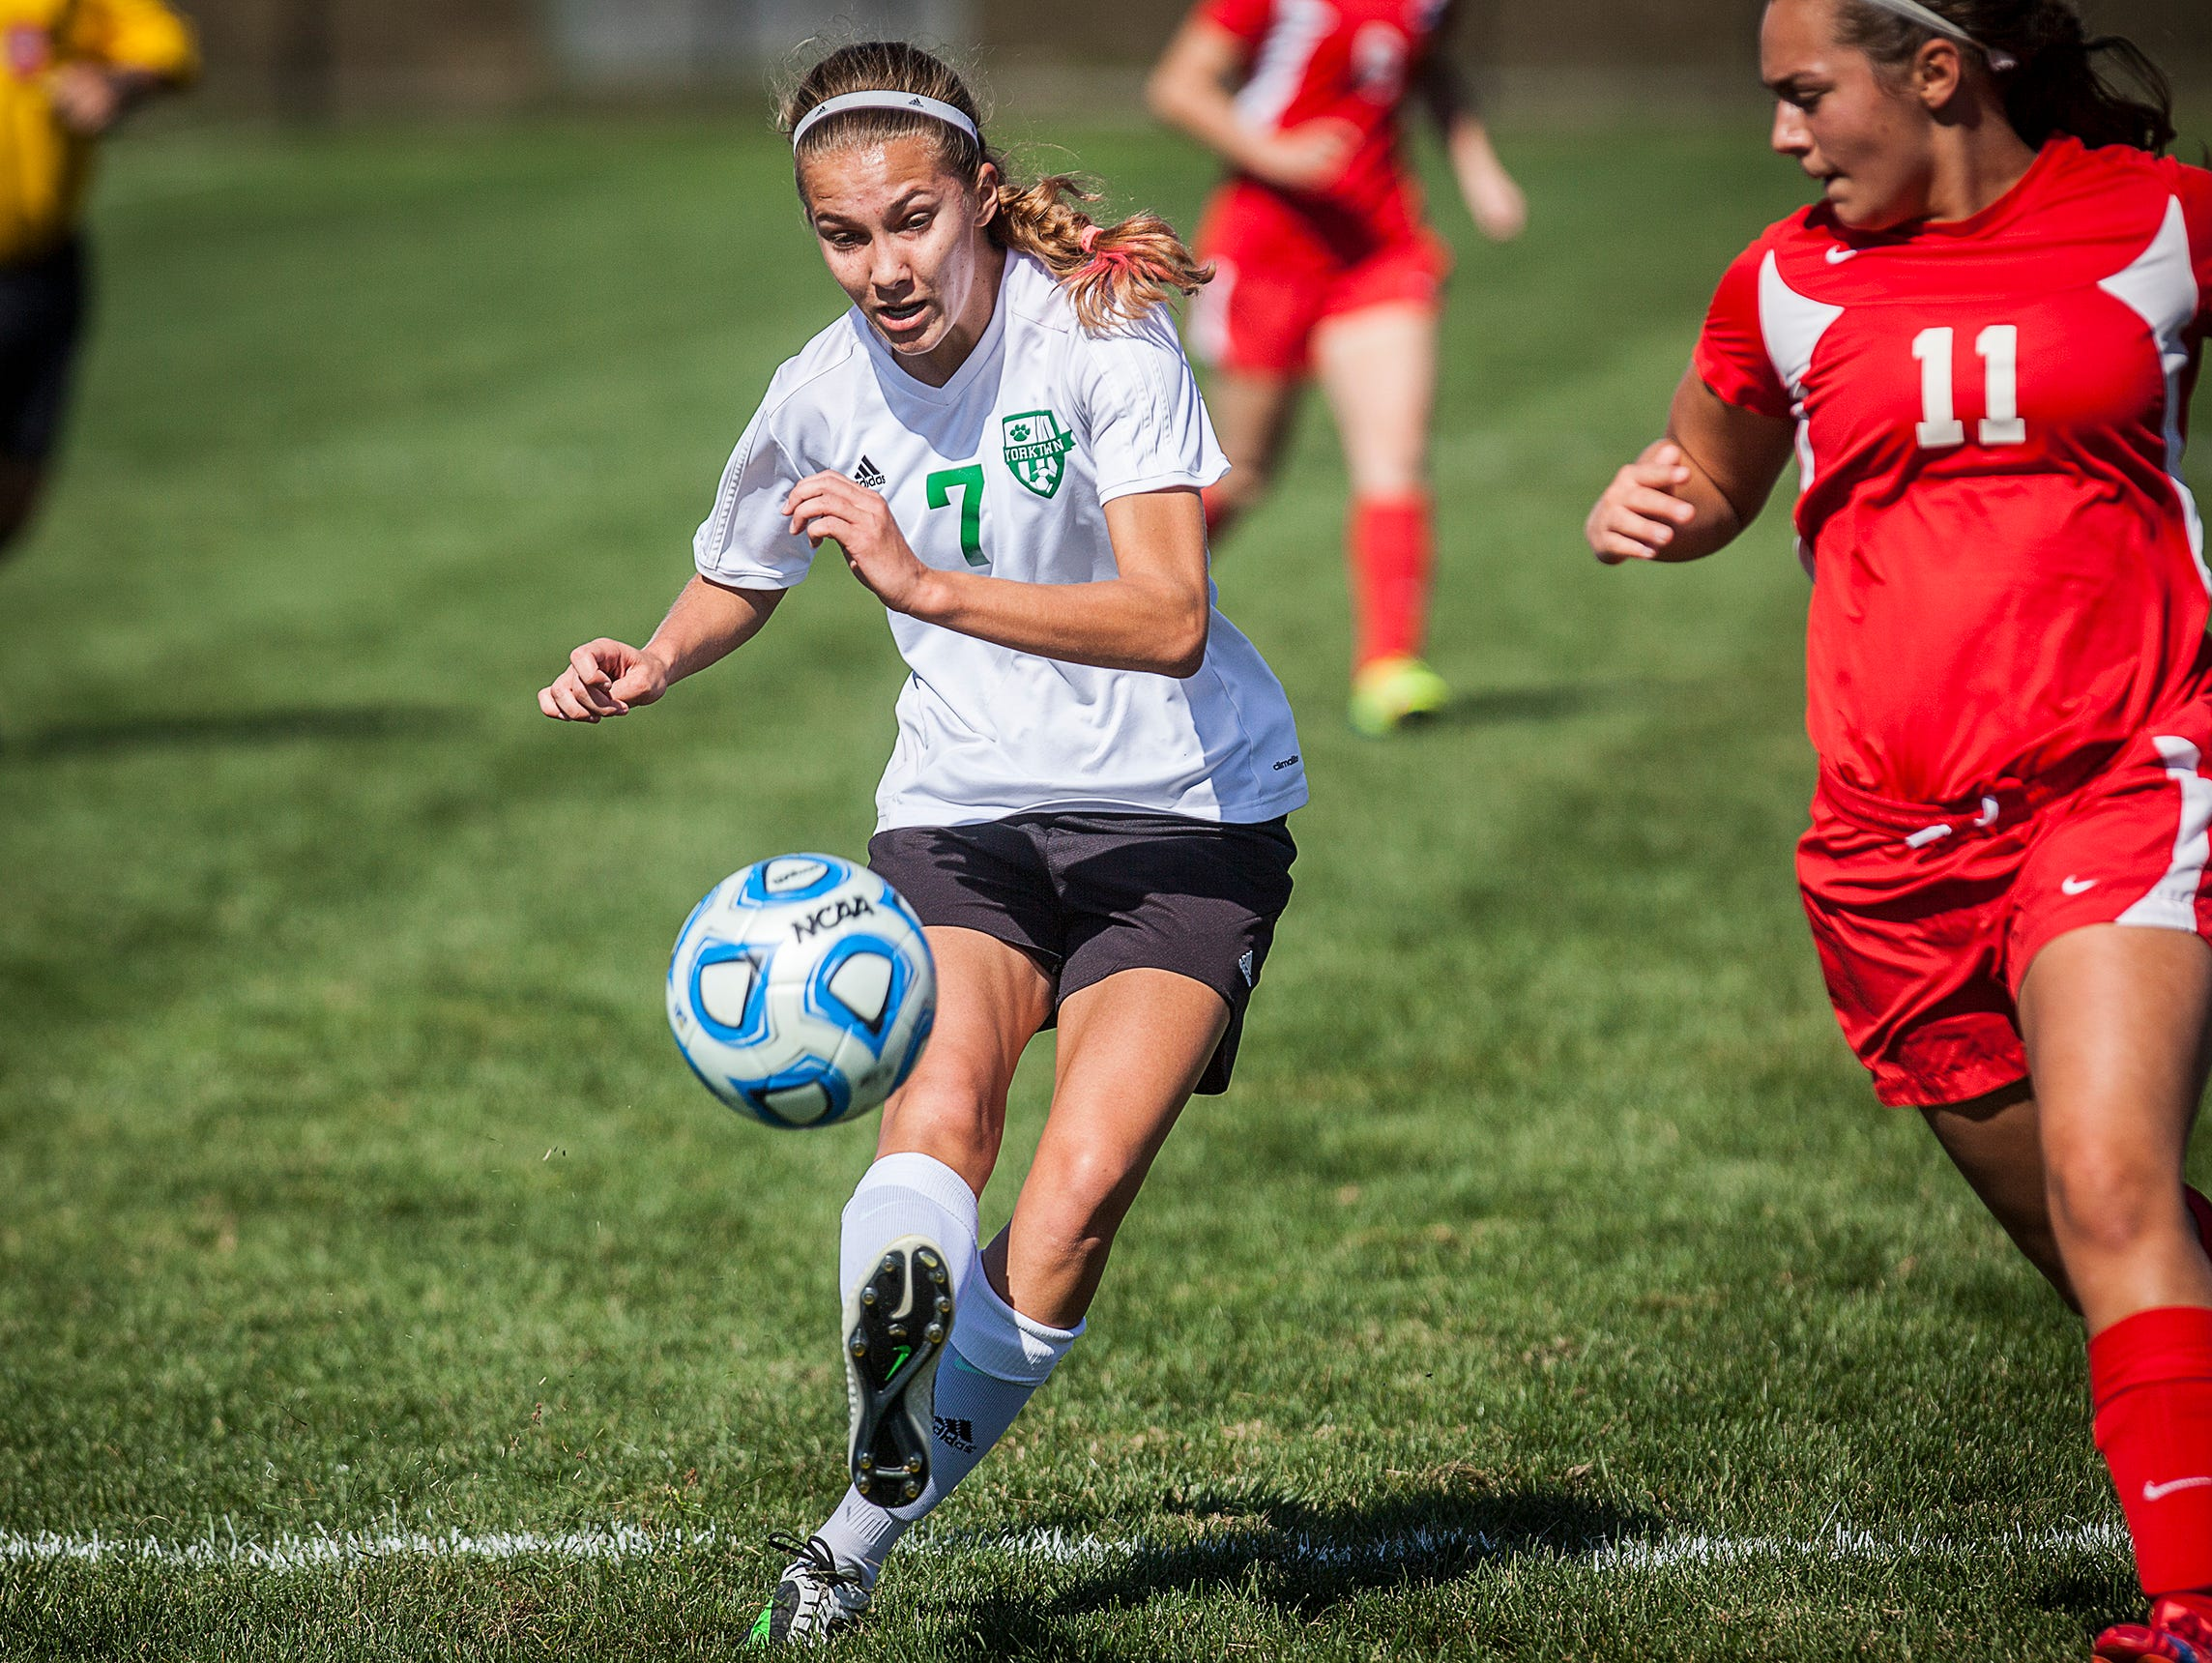 Yorktown's Hannah Rapp shoots past Jay County's defense during their game at the Yorktown Sports Park on Saturday, Oct. 10, 2015.